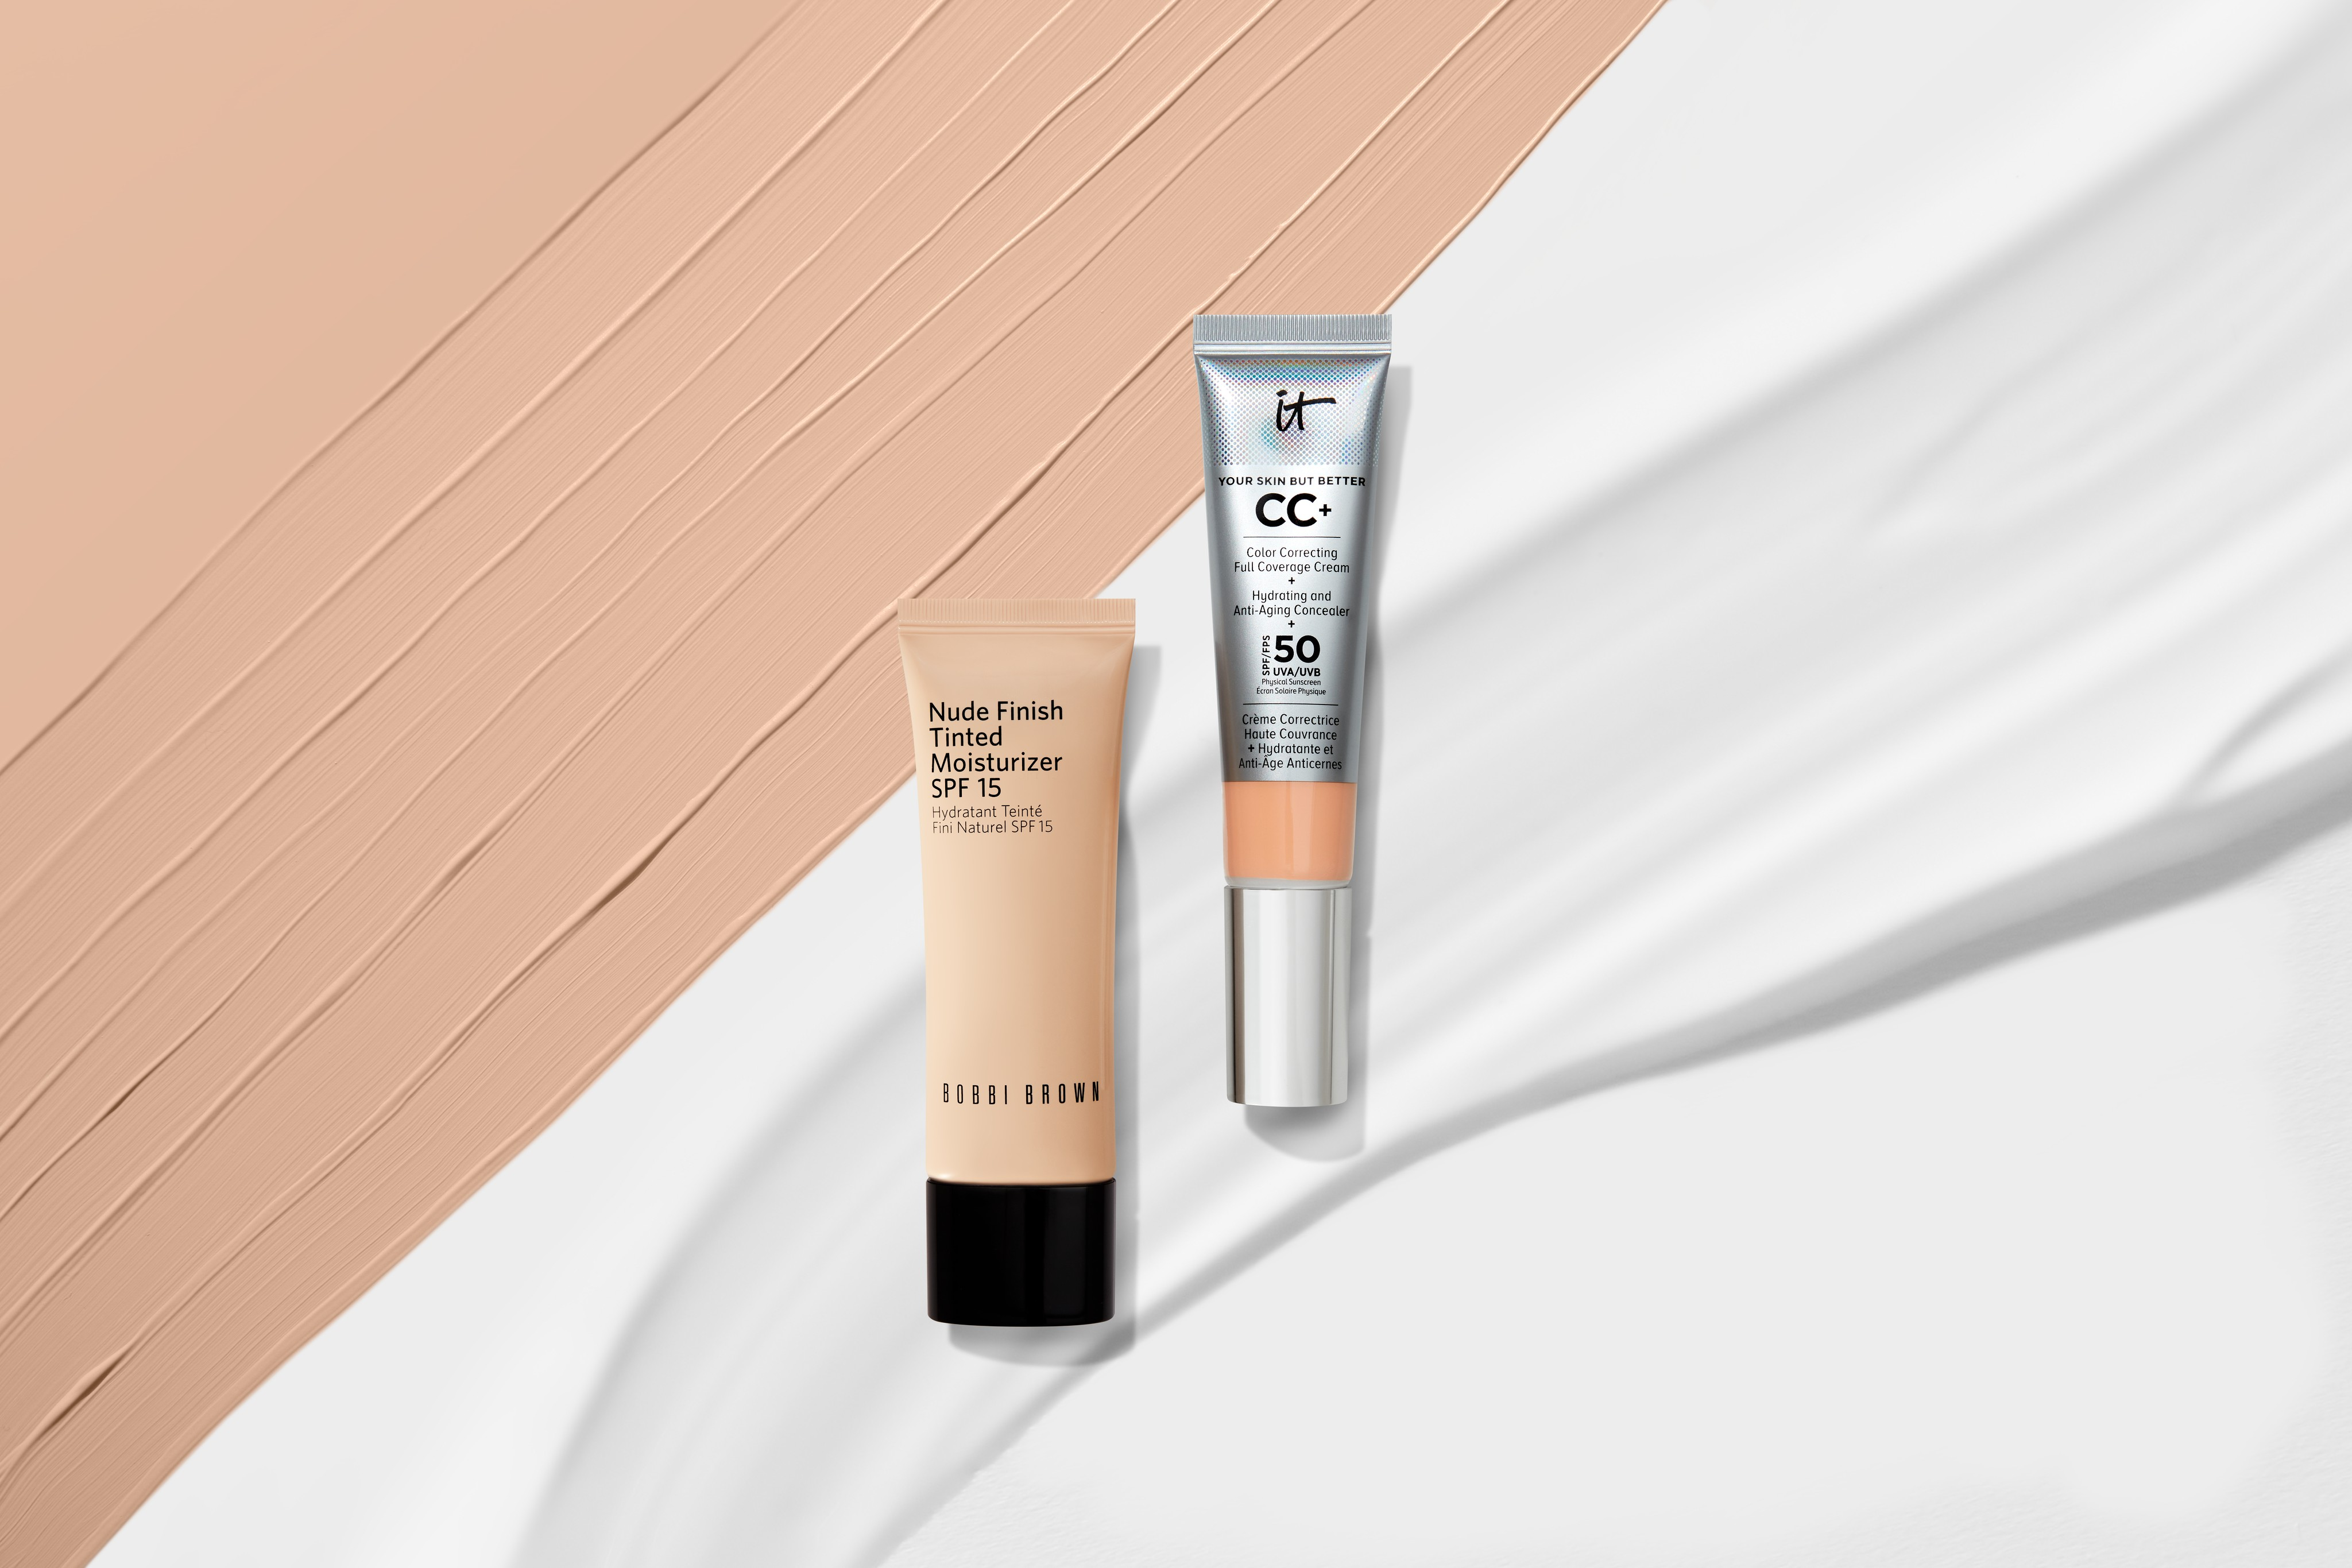 Makeup-product-multifunctional-textures-tinted-moisturizer-cc-cream-bobbi-brown-it-cosmetics-unlimited-Web-Rendition